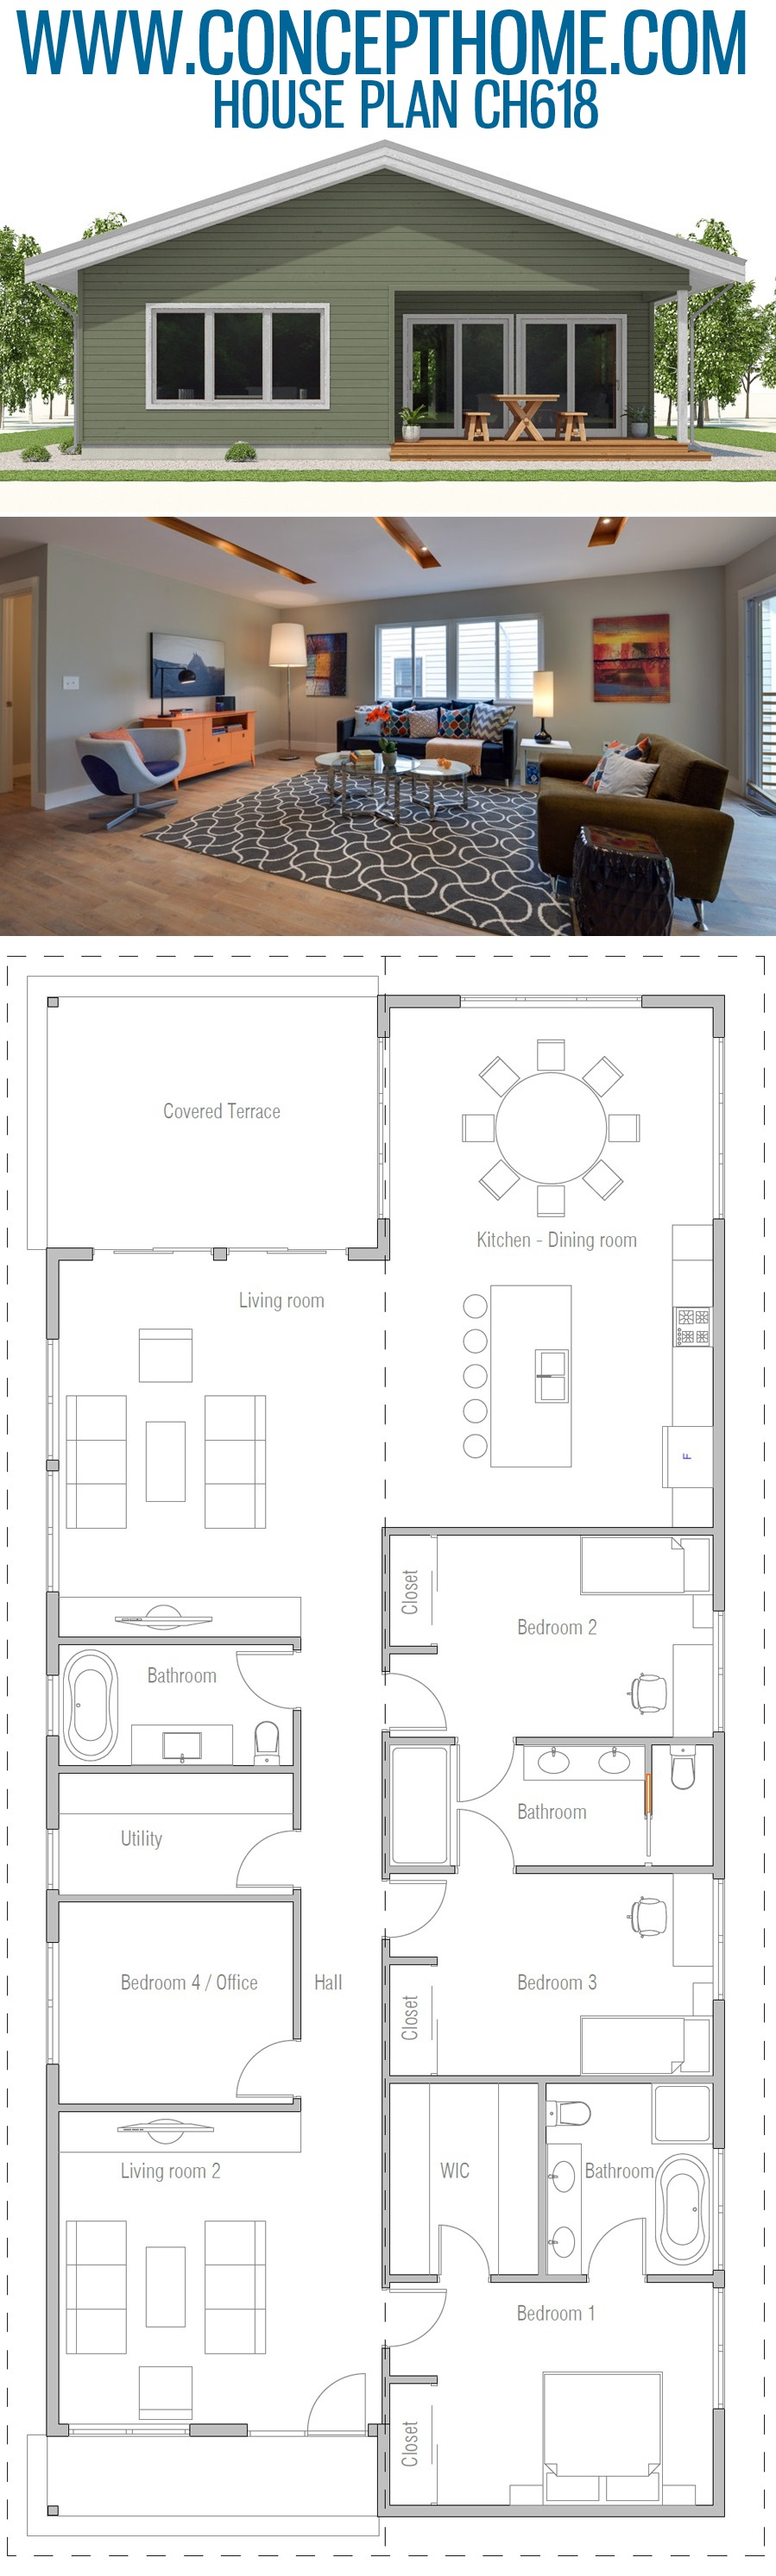 House Plan Ch618 Sims House Plans House Layouts House Layout Plans